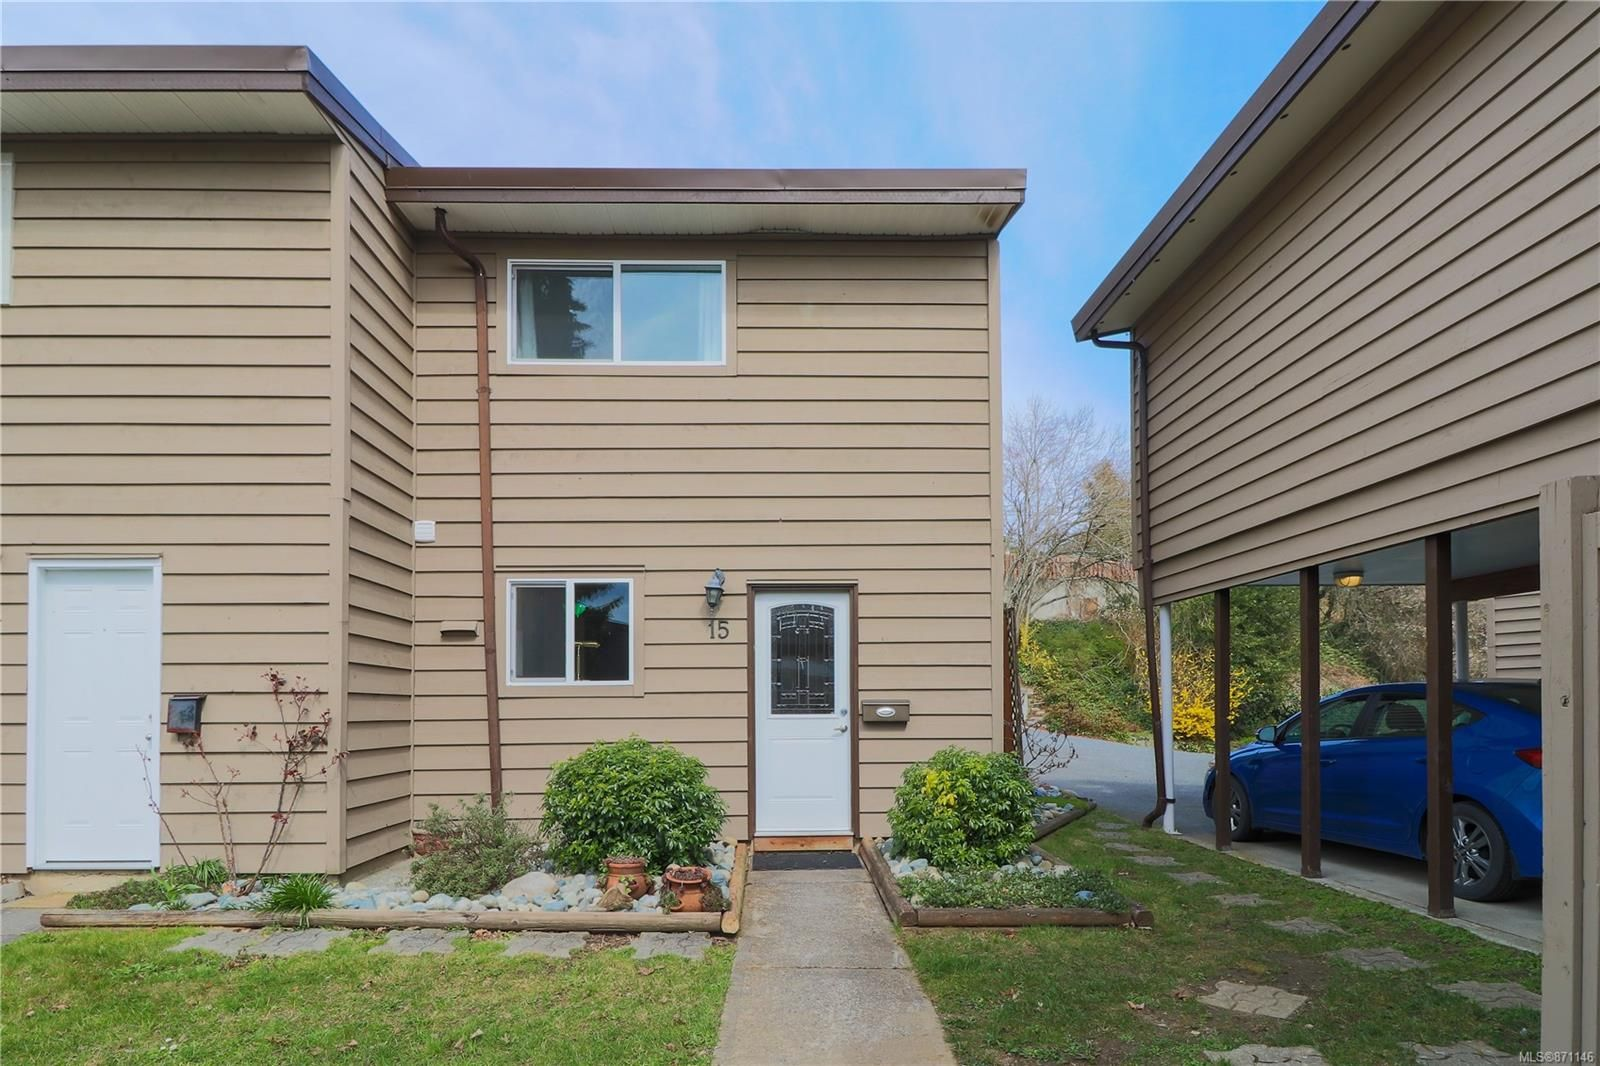 Main Photo: 15 25 Pryde Ave in : Na Central Nanaimo Row/Townhouse for sale (Nanaimo)  : MLS®# 871146